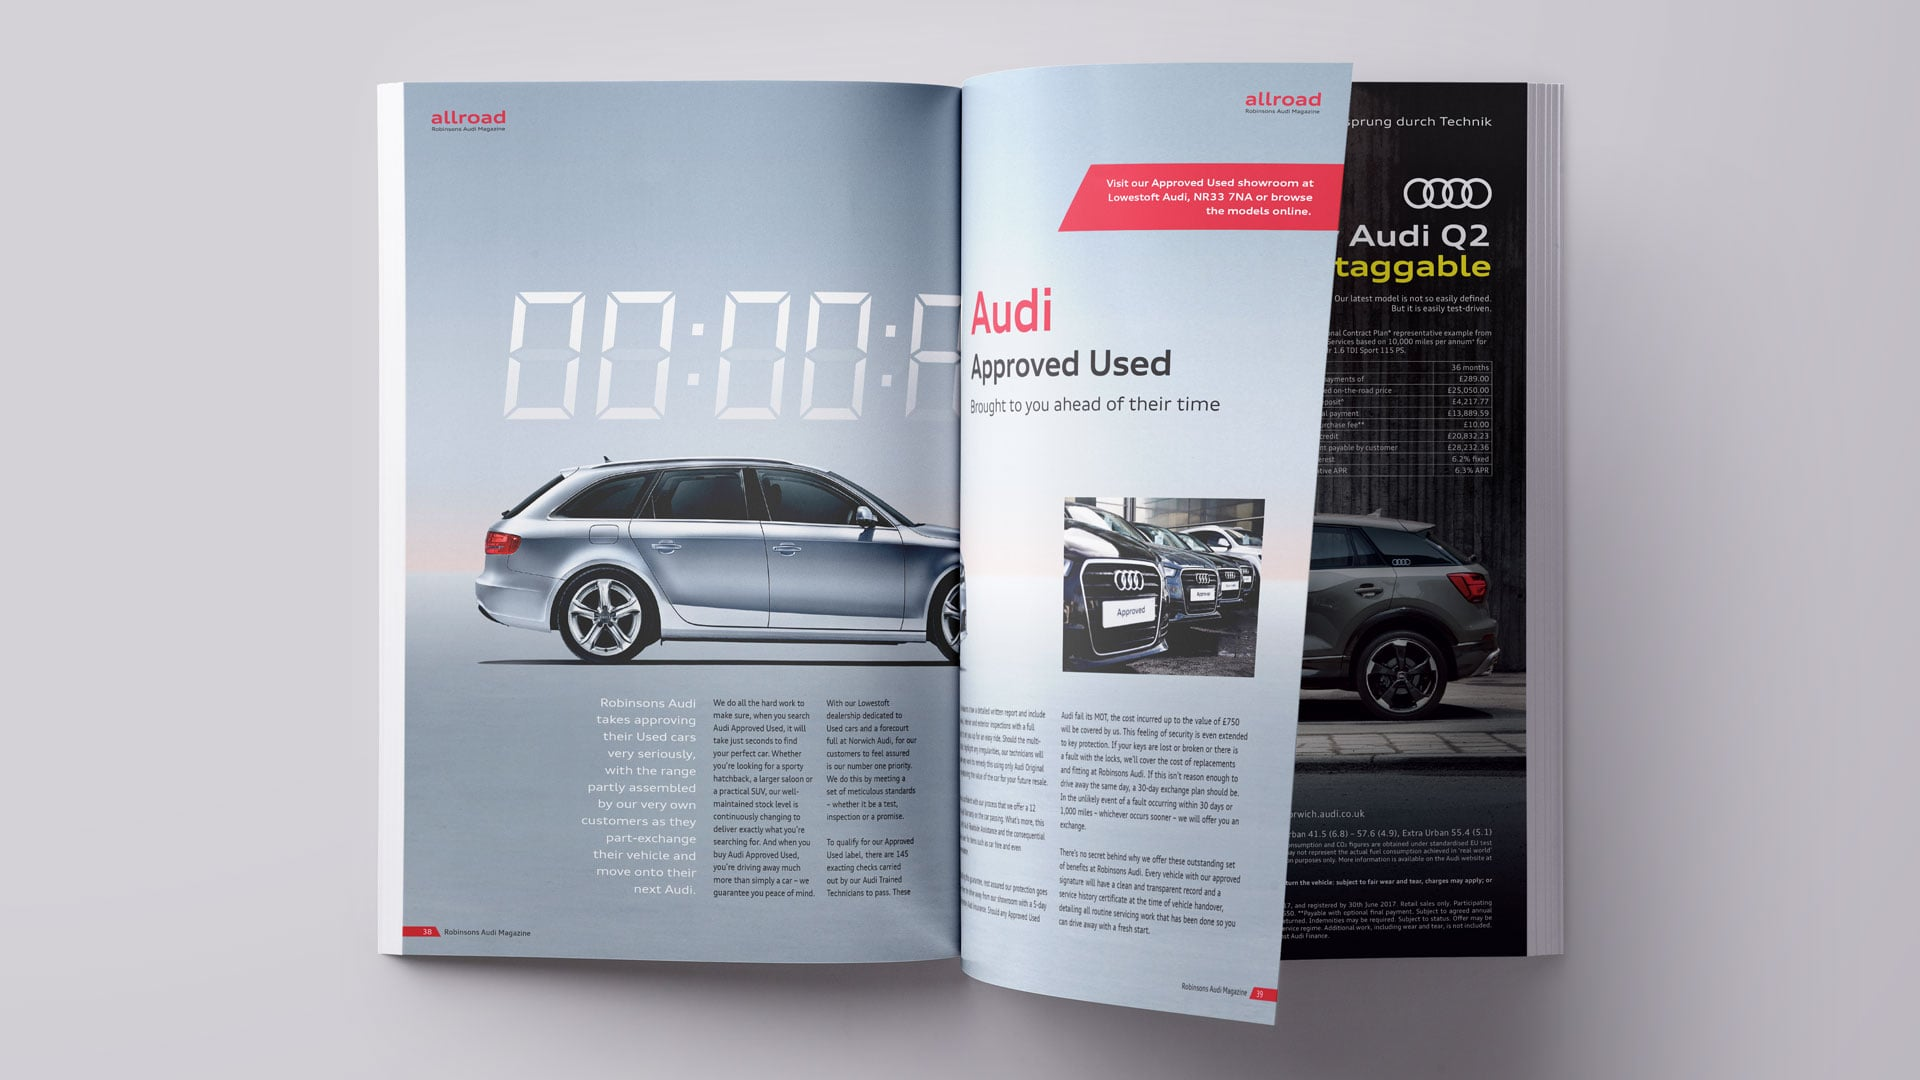 Robinsons Audi allroad magazine approved used spread mockup print design